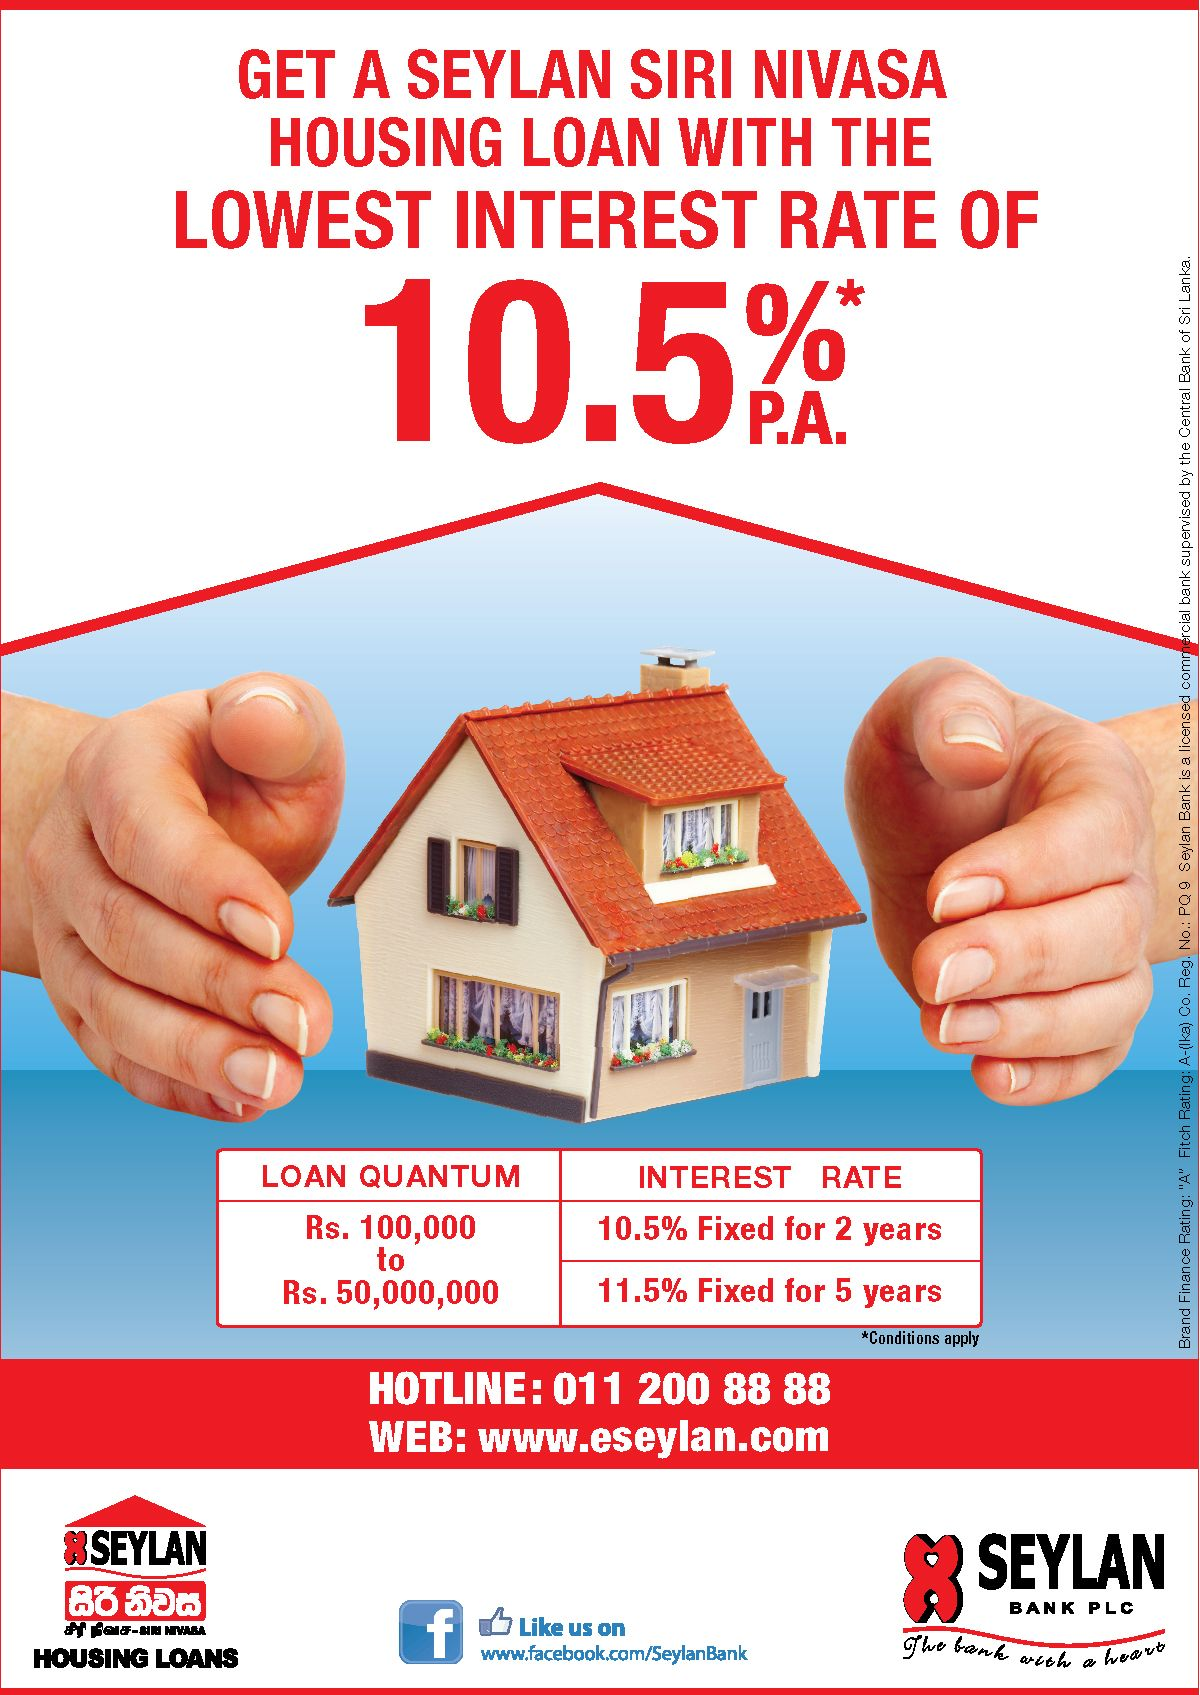 Housing Loans At The Lowest Interest Home Loans Loan Low Interest Rate